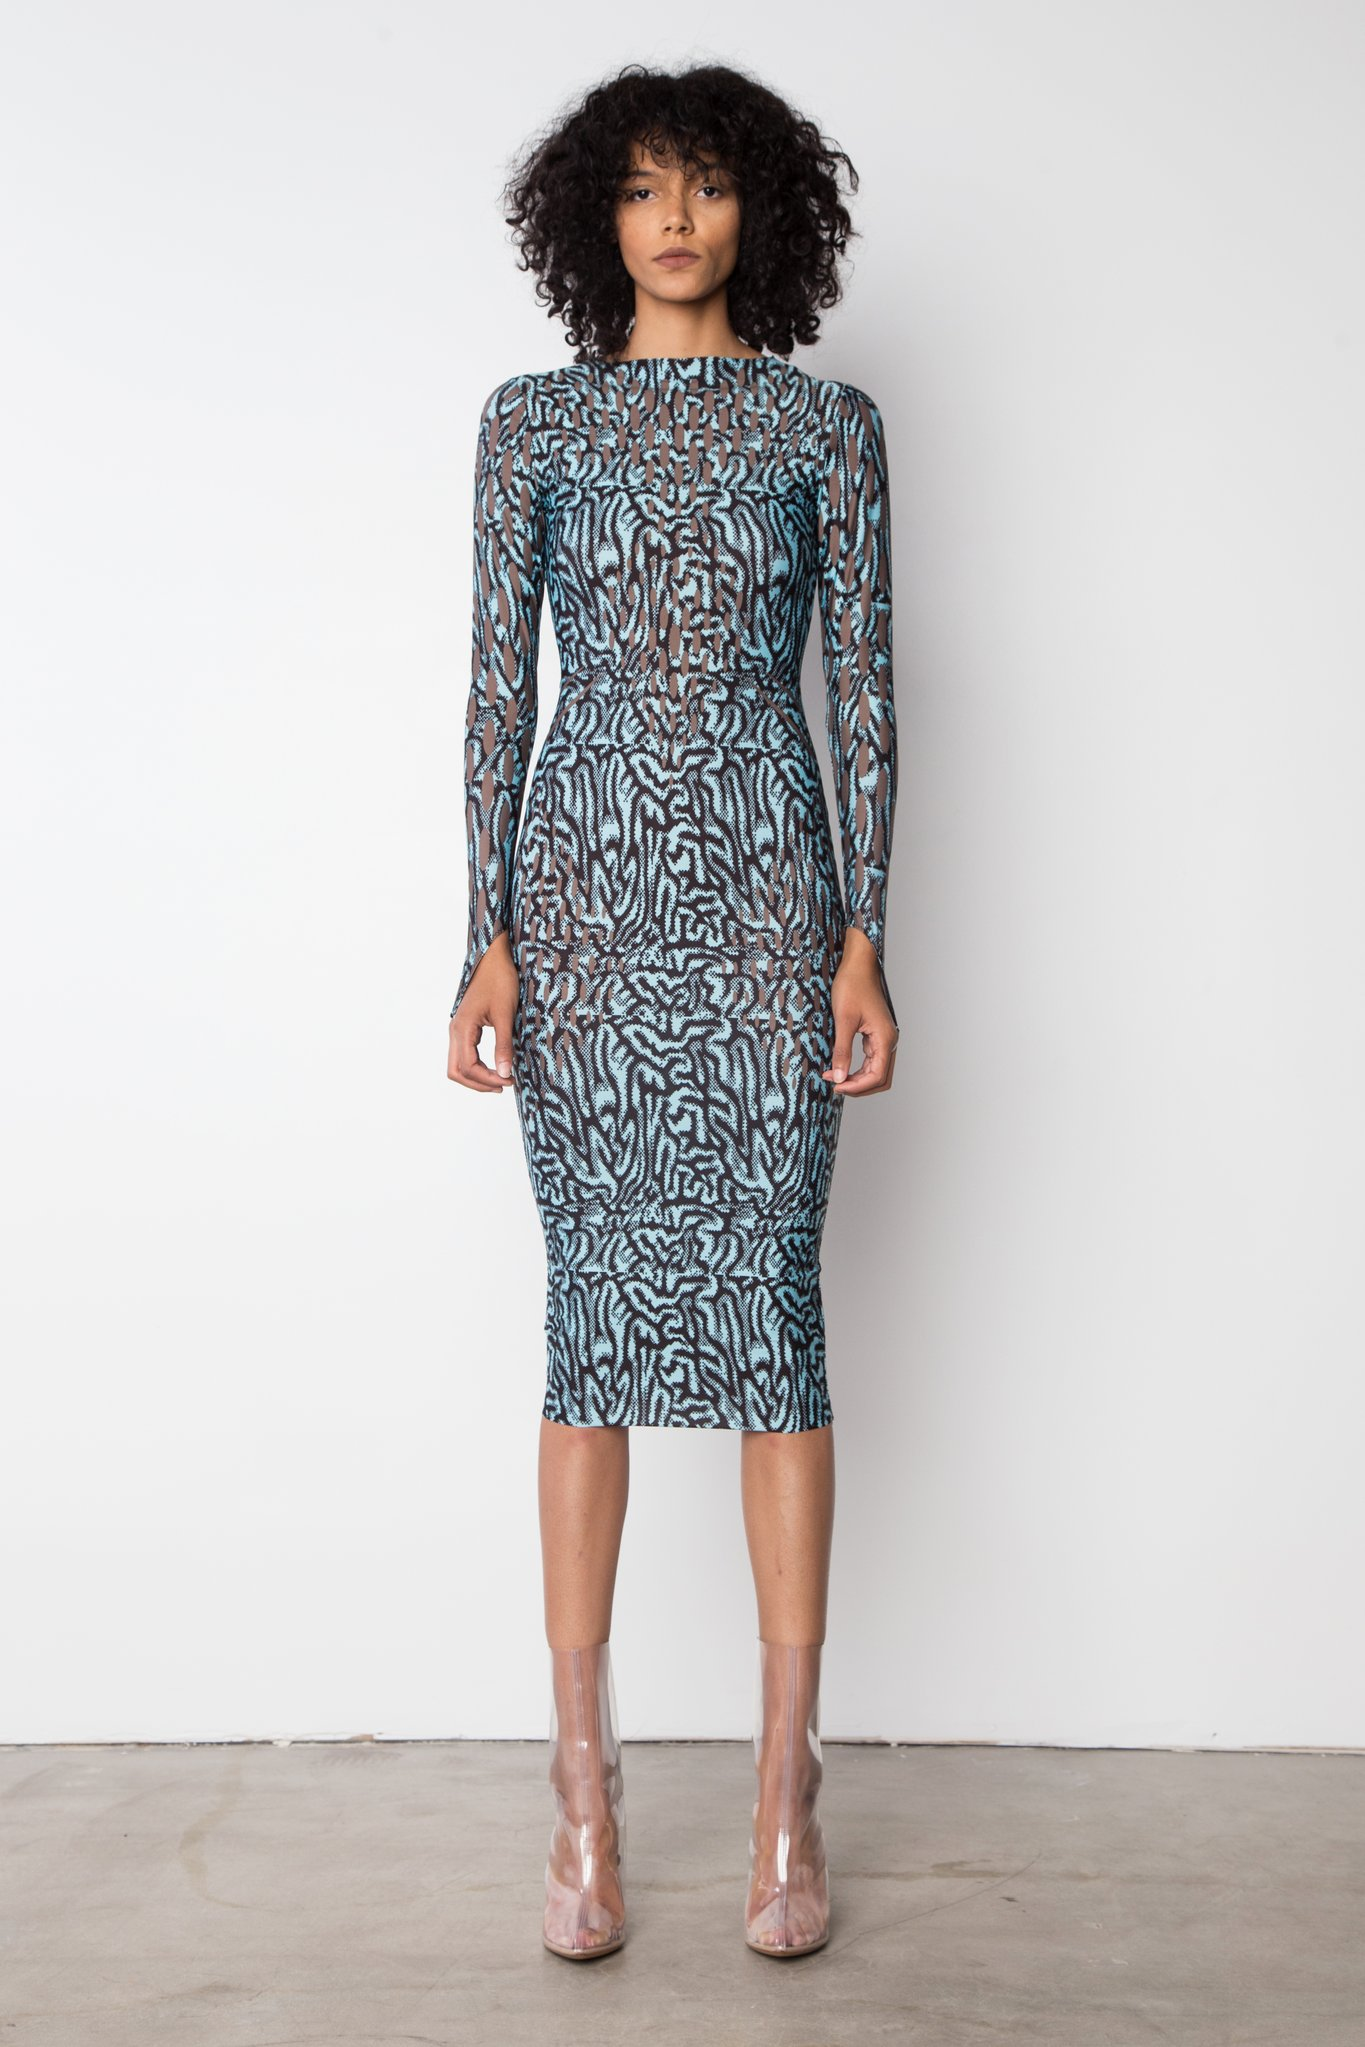 YS400 LONG SLEEVE DRESS by Maisie-Wilen, available on maisiewilen.com for $564 Kylie Jenner Dress SIMILAR PRODUCT